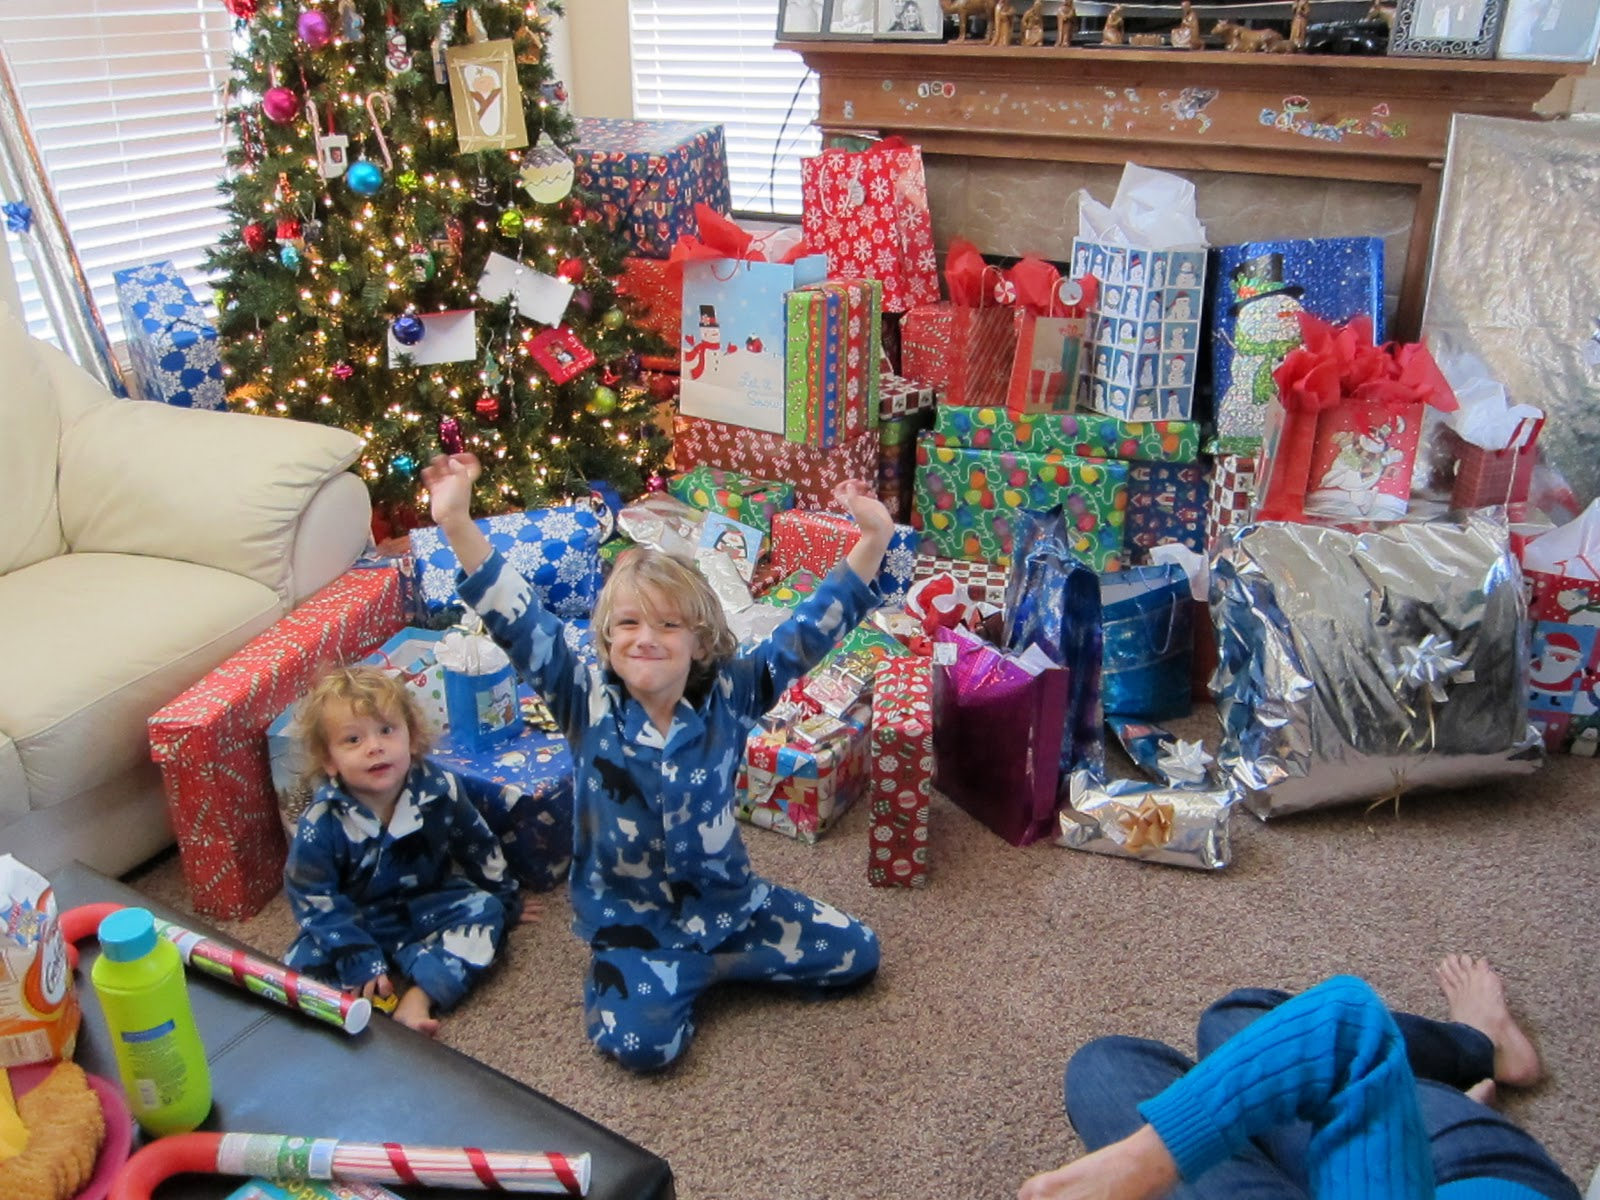 Children of a Lesser Blog: Christmas Day